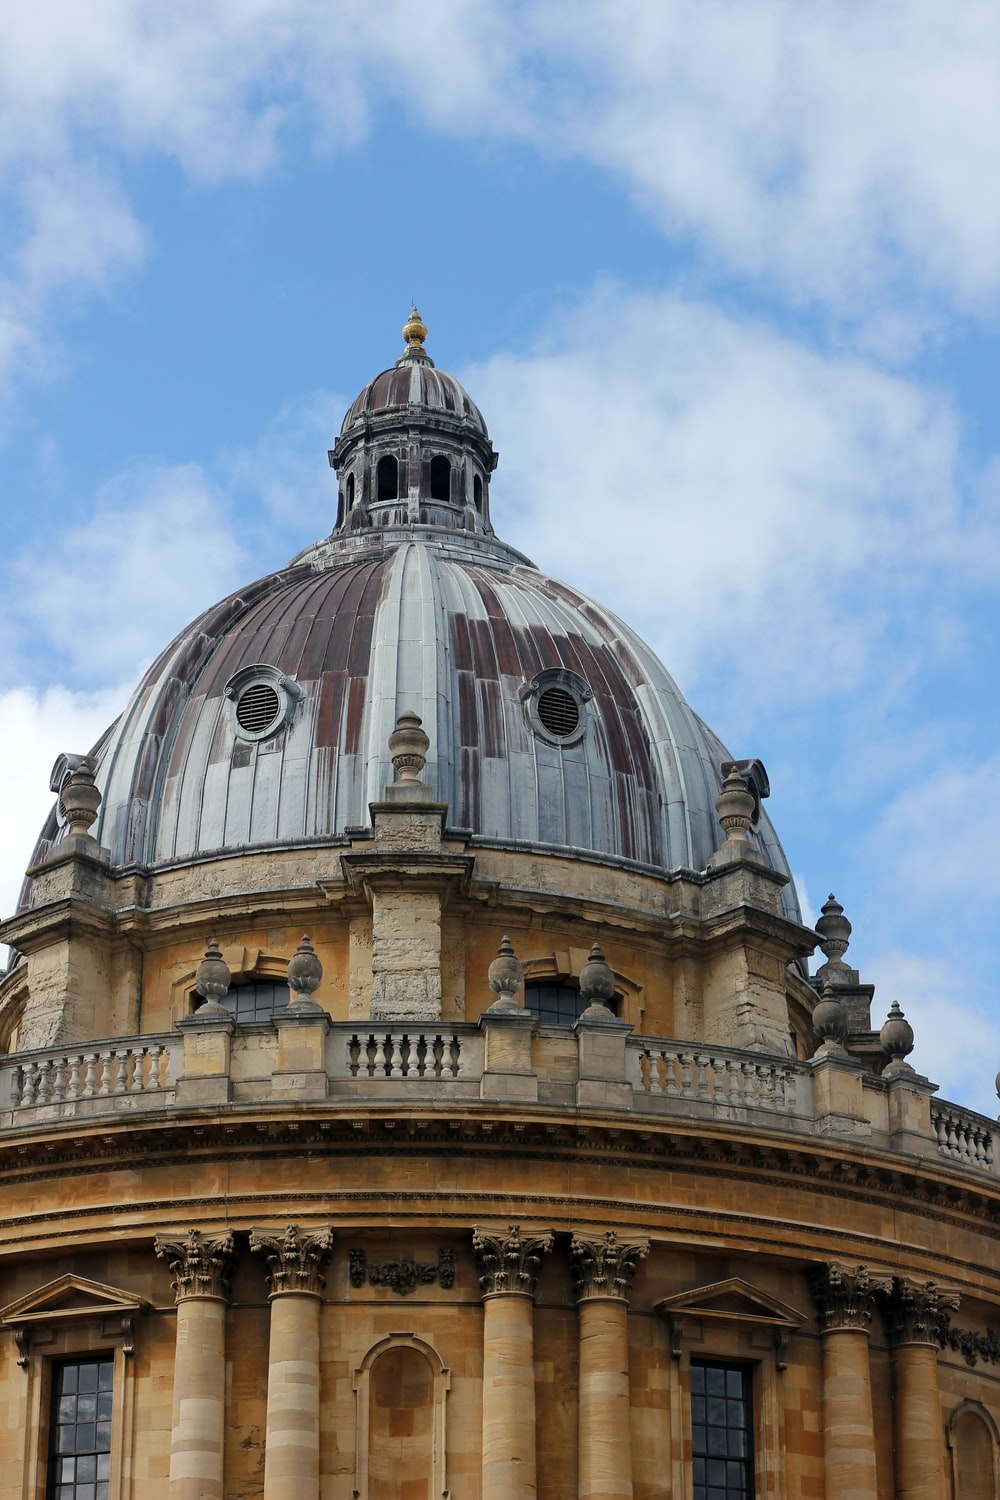 brown and gray dome building under white clouds and blue sky